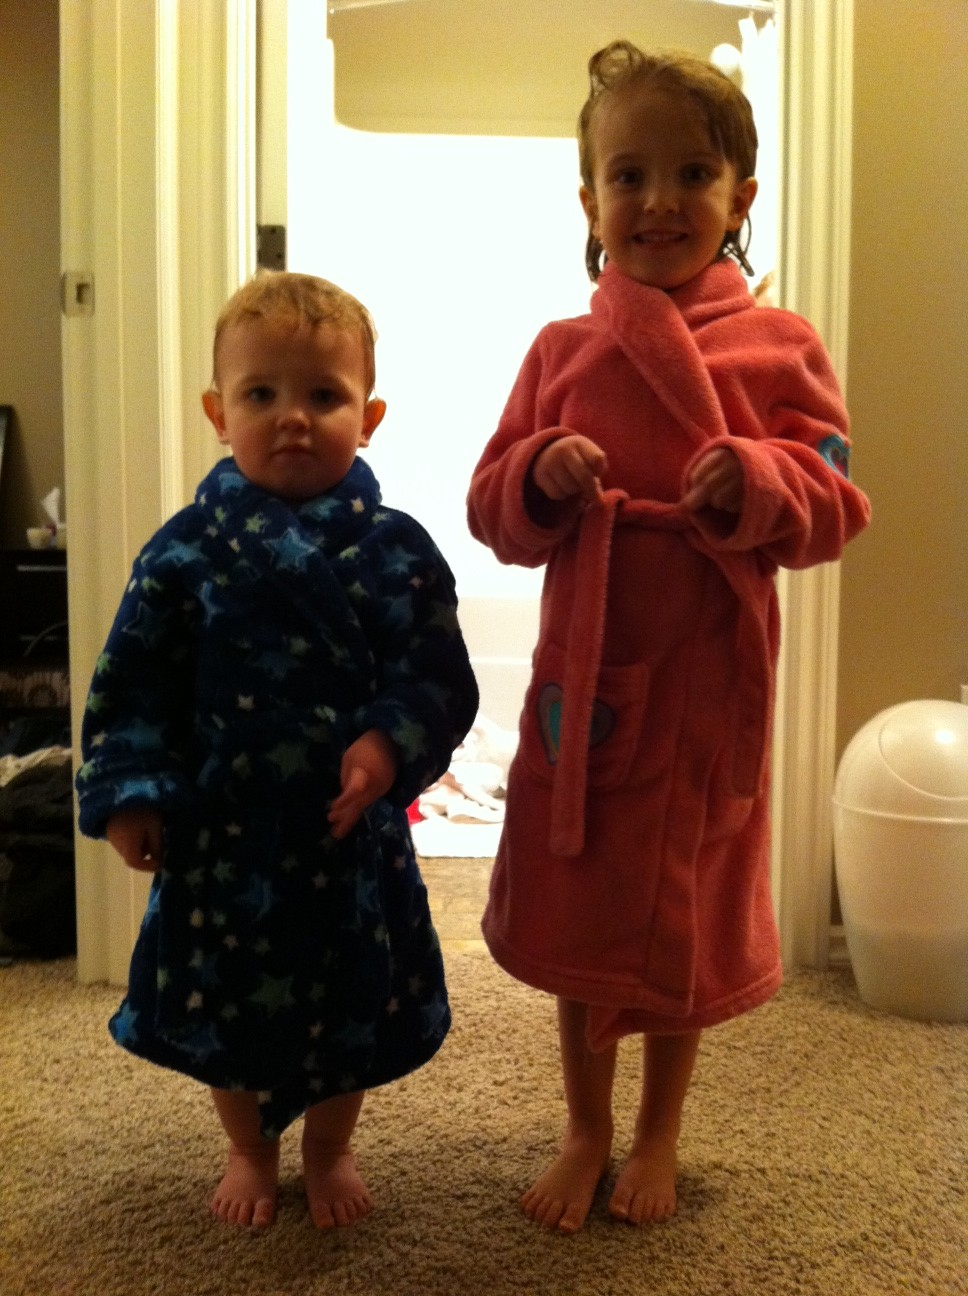 Kids in Bathrobes